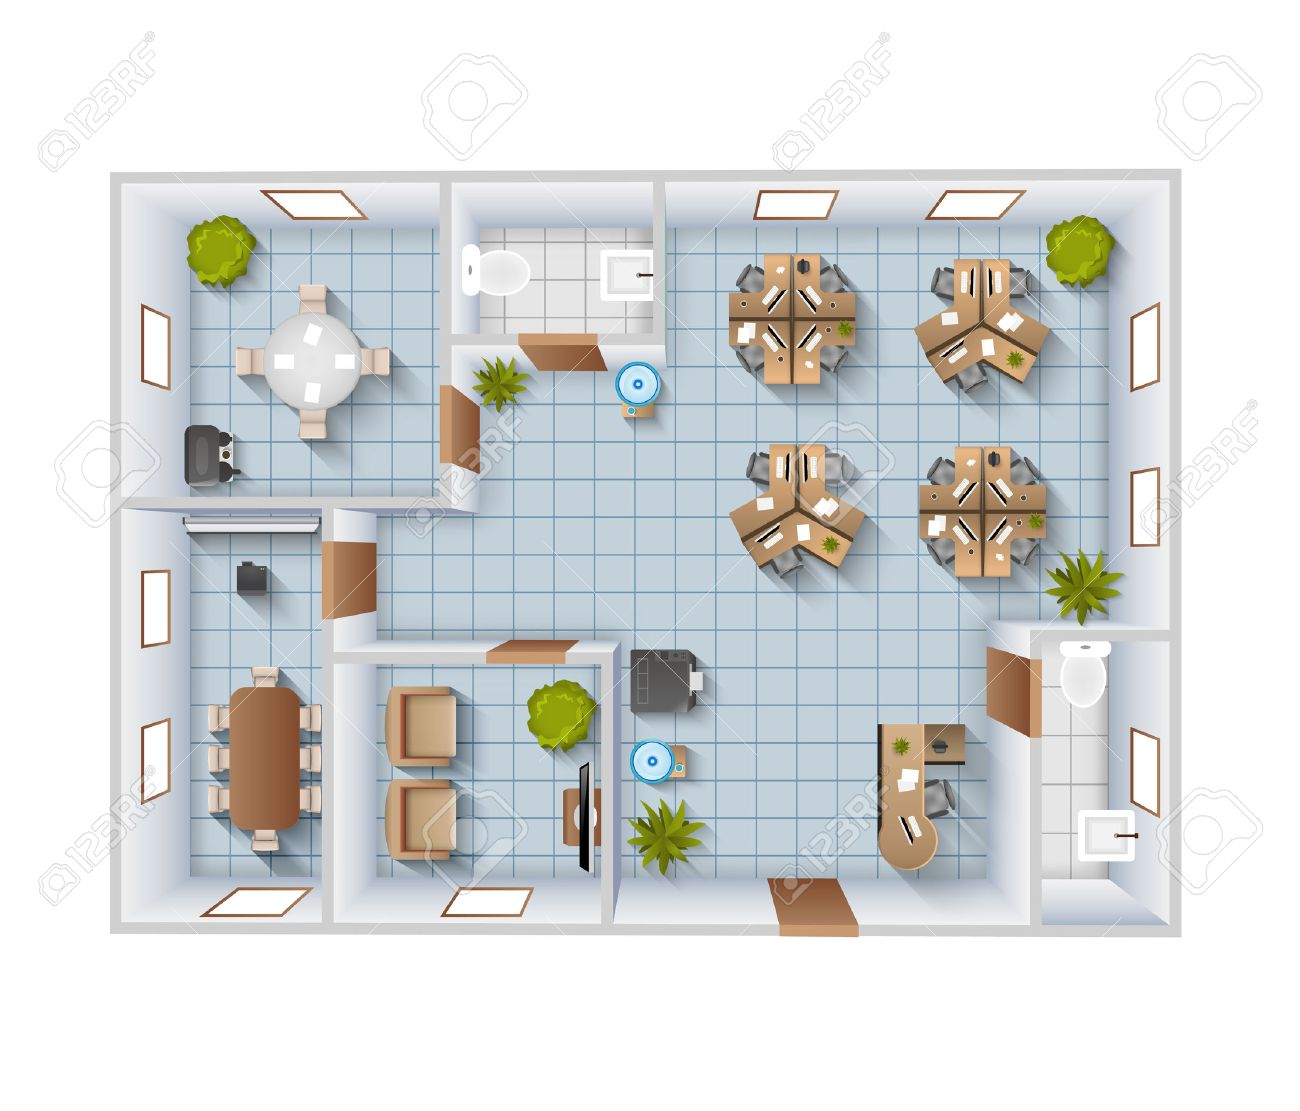 Office interior top view blueprint template with conference room office interior top view blueprint template with conference room and restroom vector illustration banque d malvernweather Choice Image